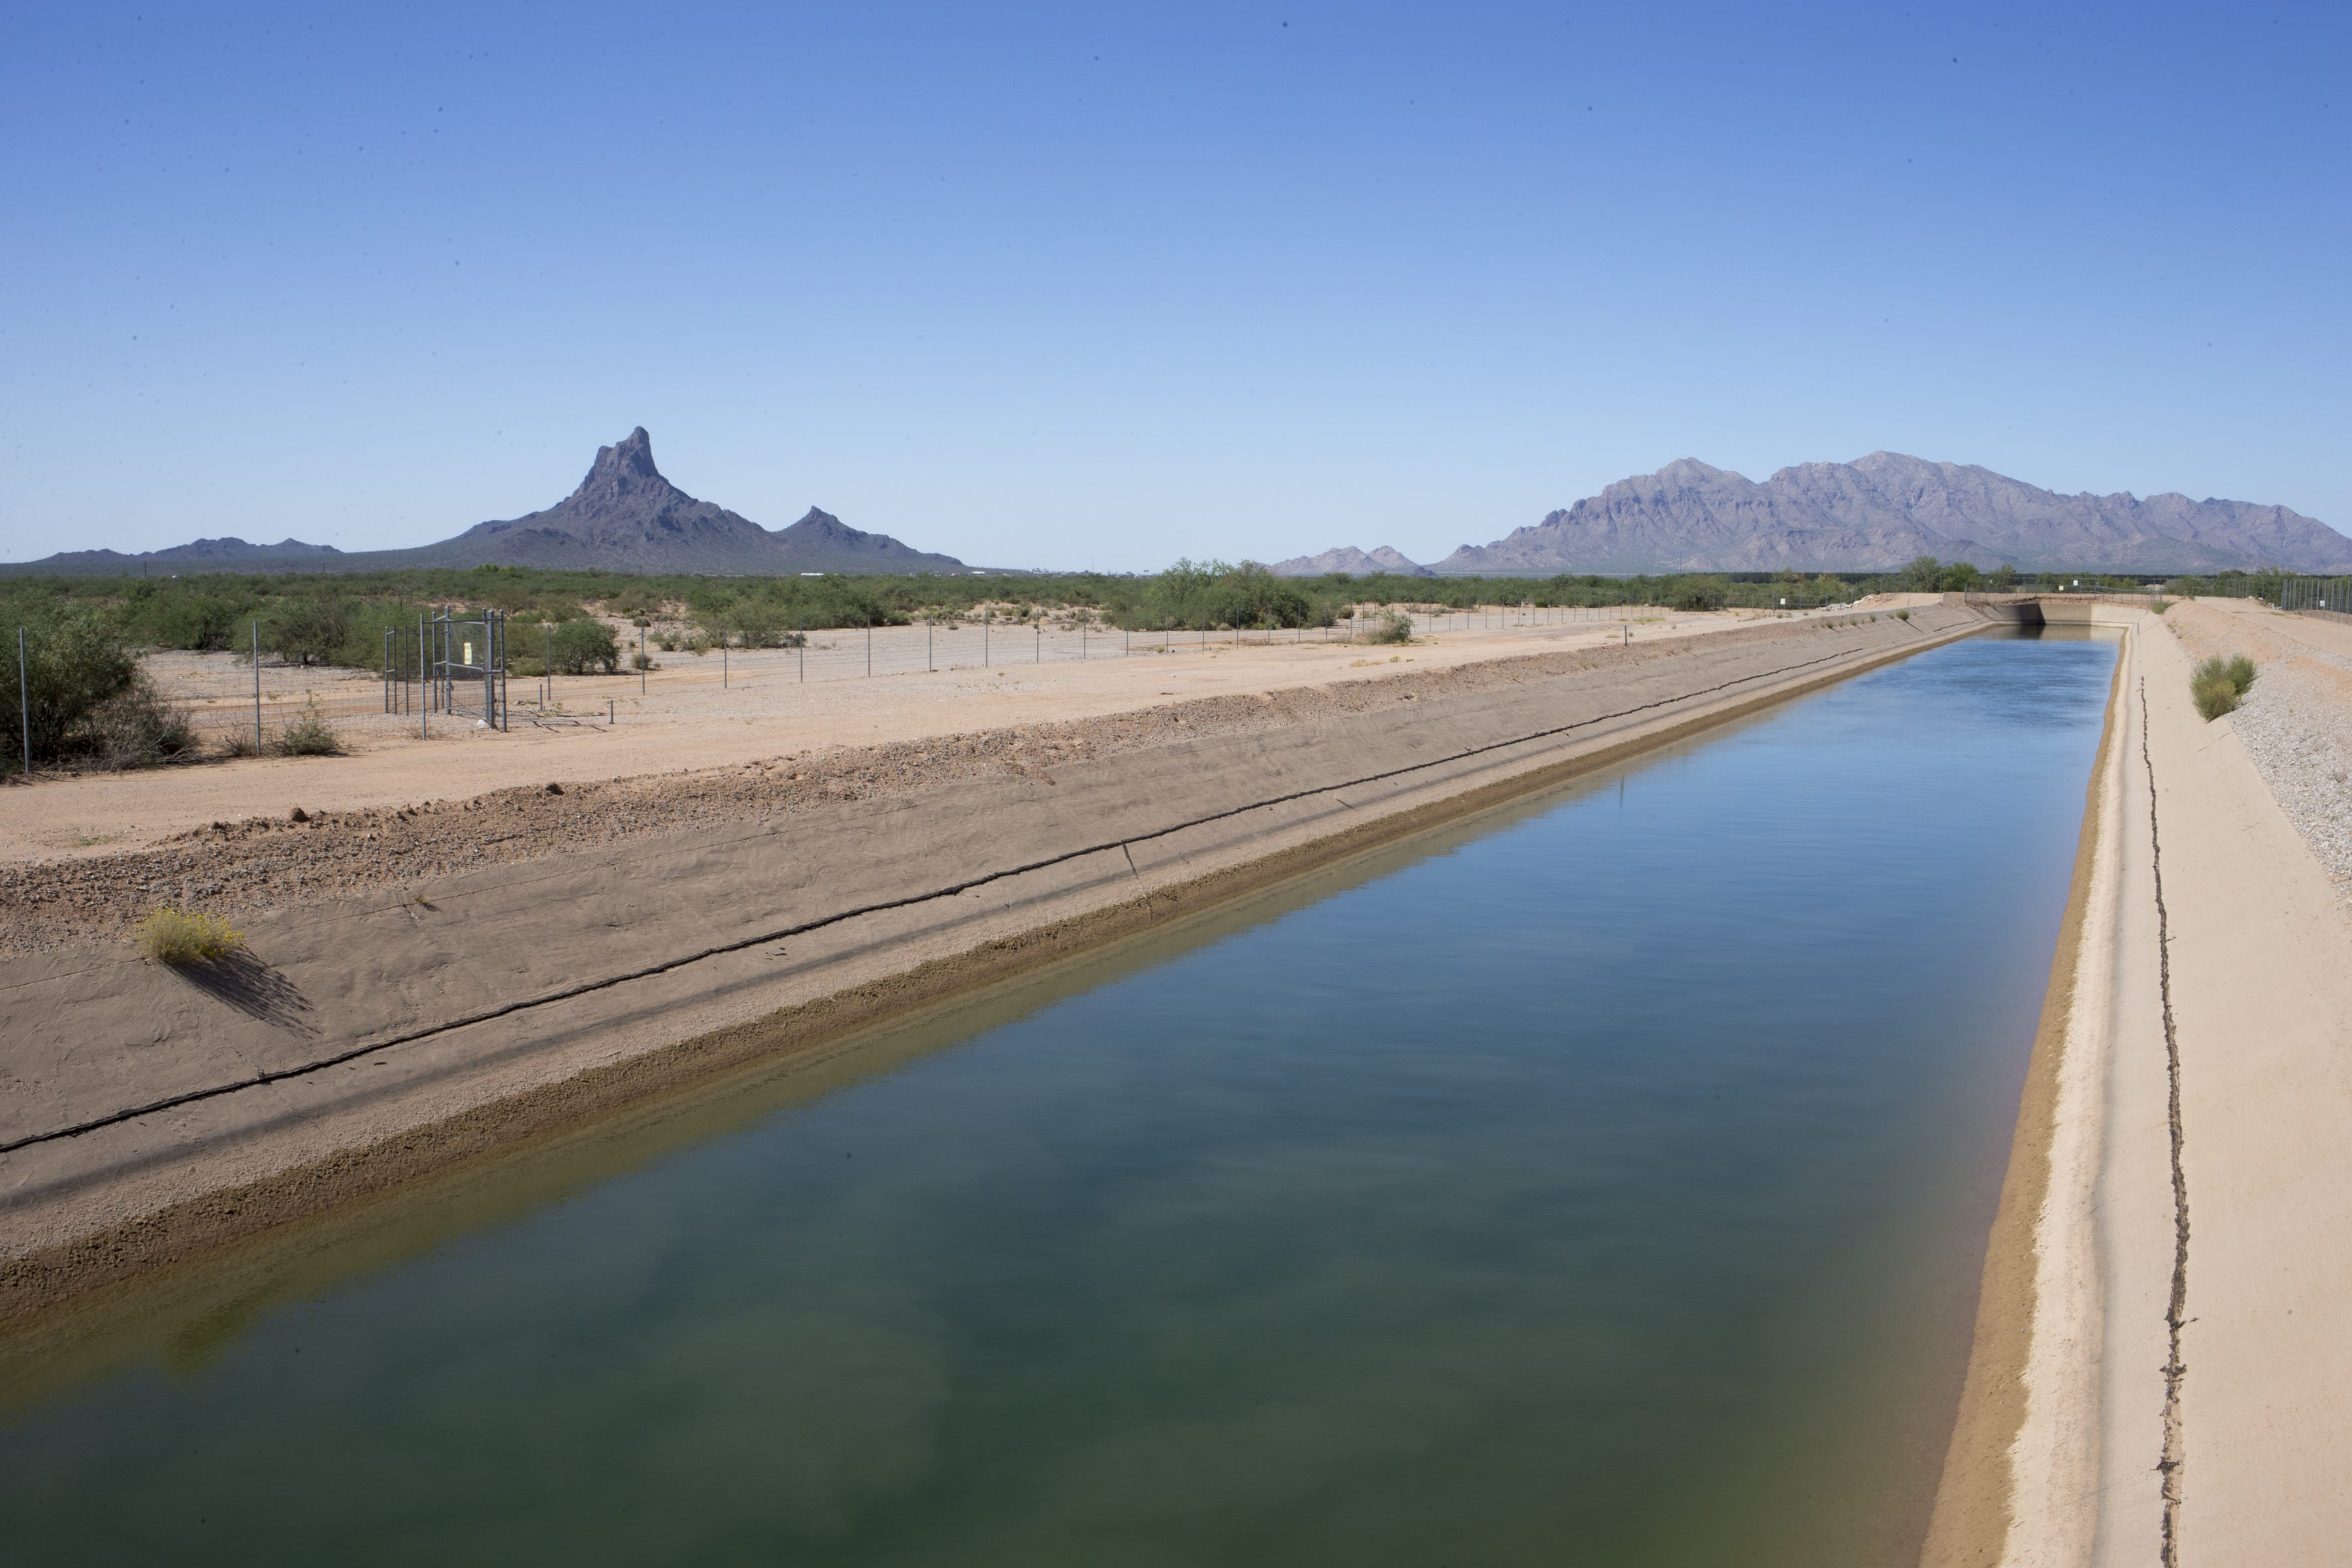 If you care about how Arizona handles a water shortage, don't overlook this race